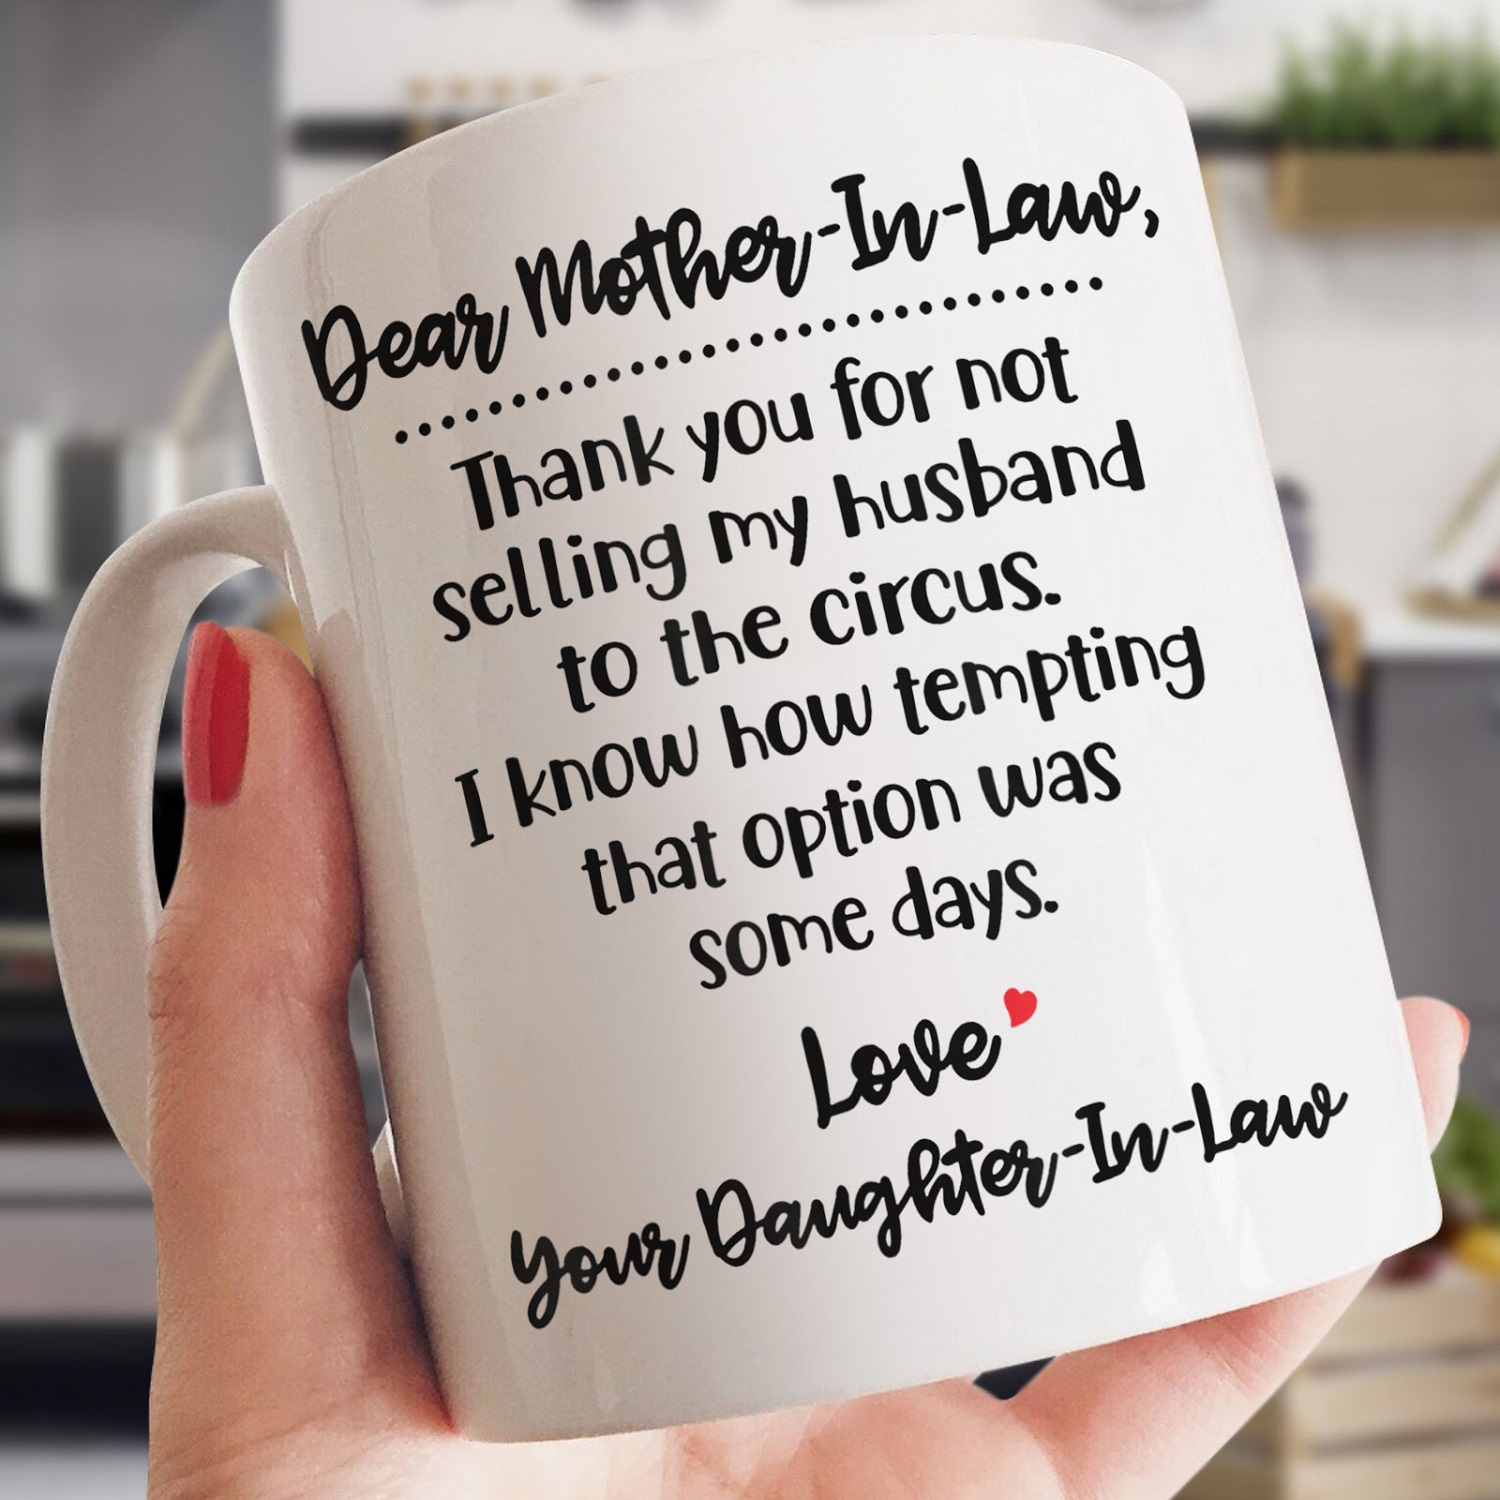 Thank You For Not Selling My Husband To The Circus Mug - Gift For Mother-in-law